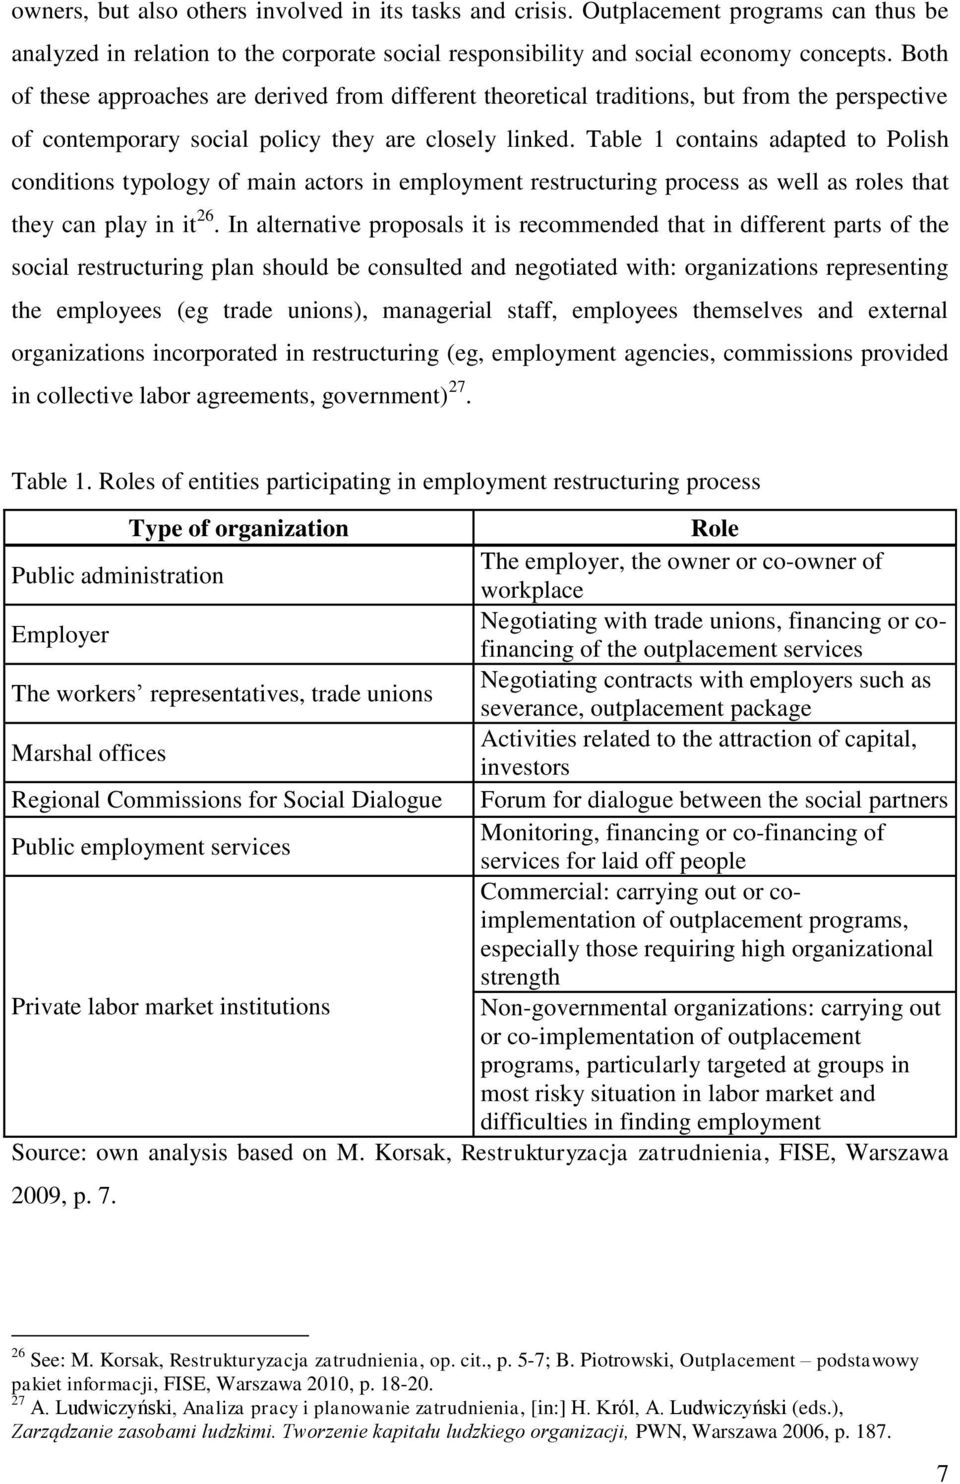 Table 1 contains adapted to Polish conditions typology of main actors in employment restructuring process as well as roles that they can play in it 26.